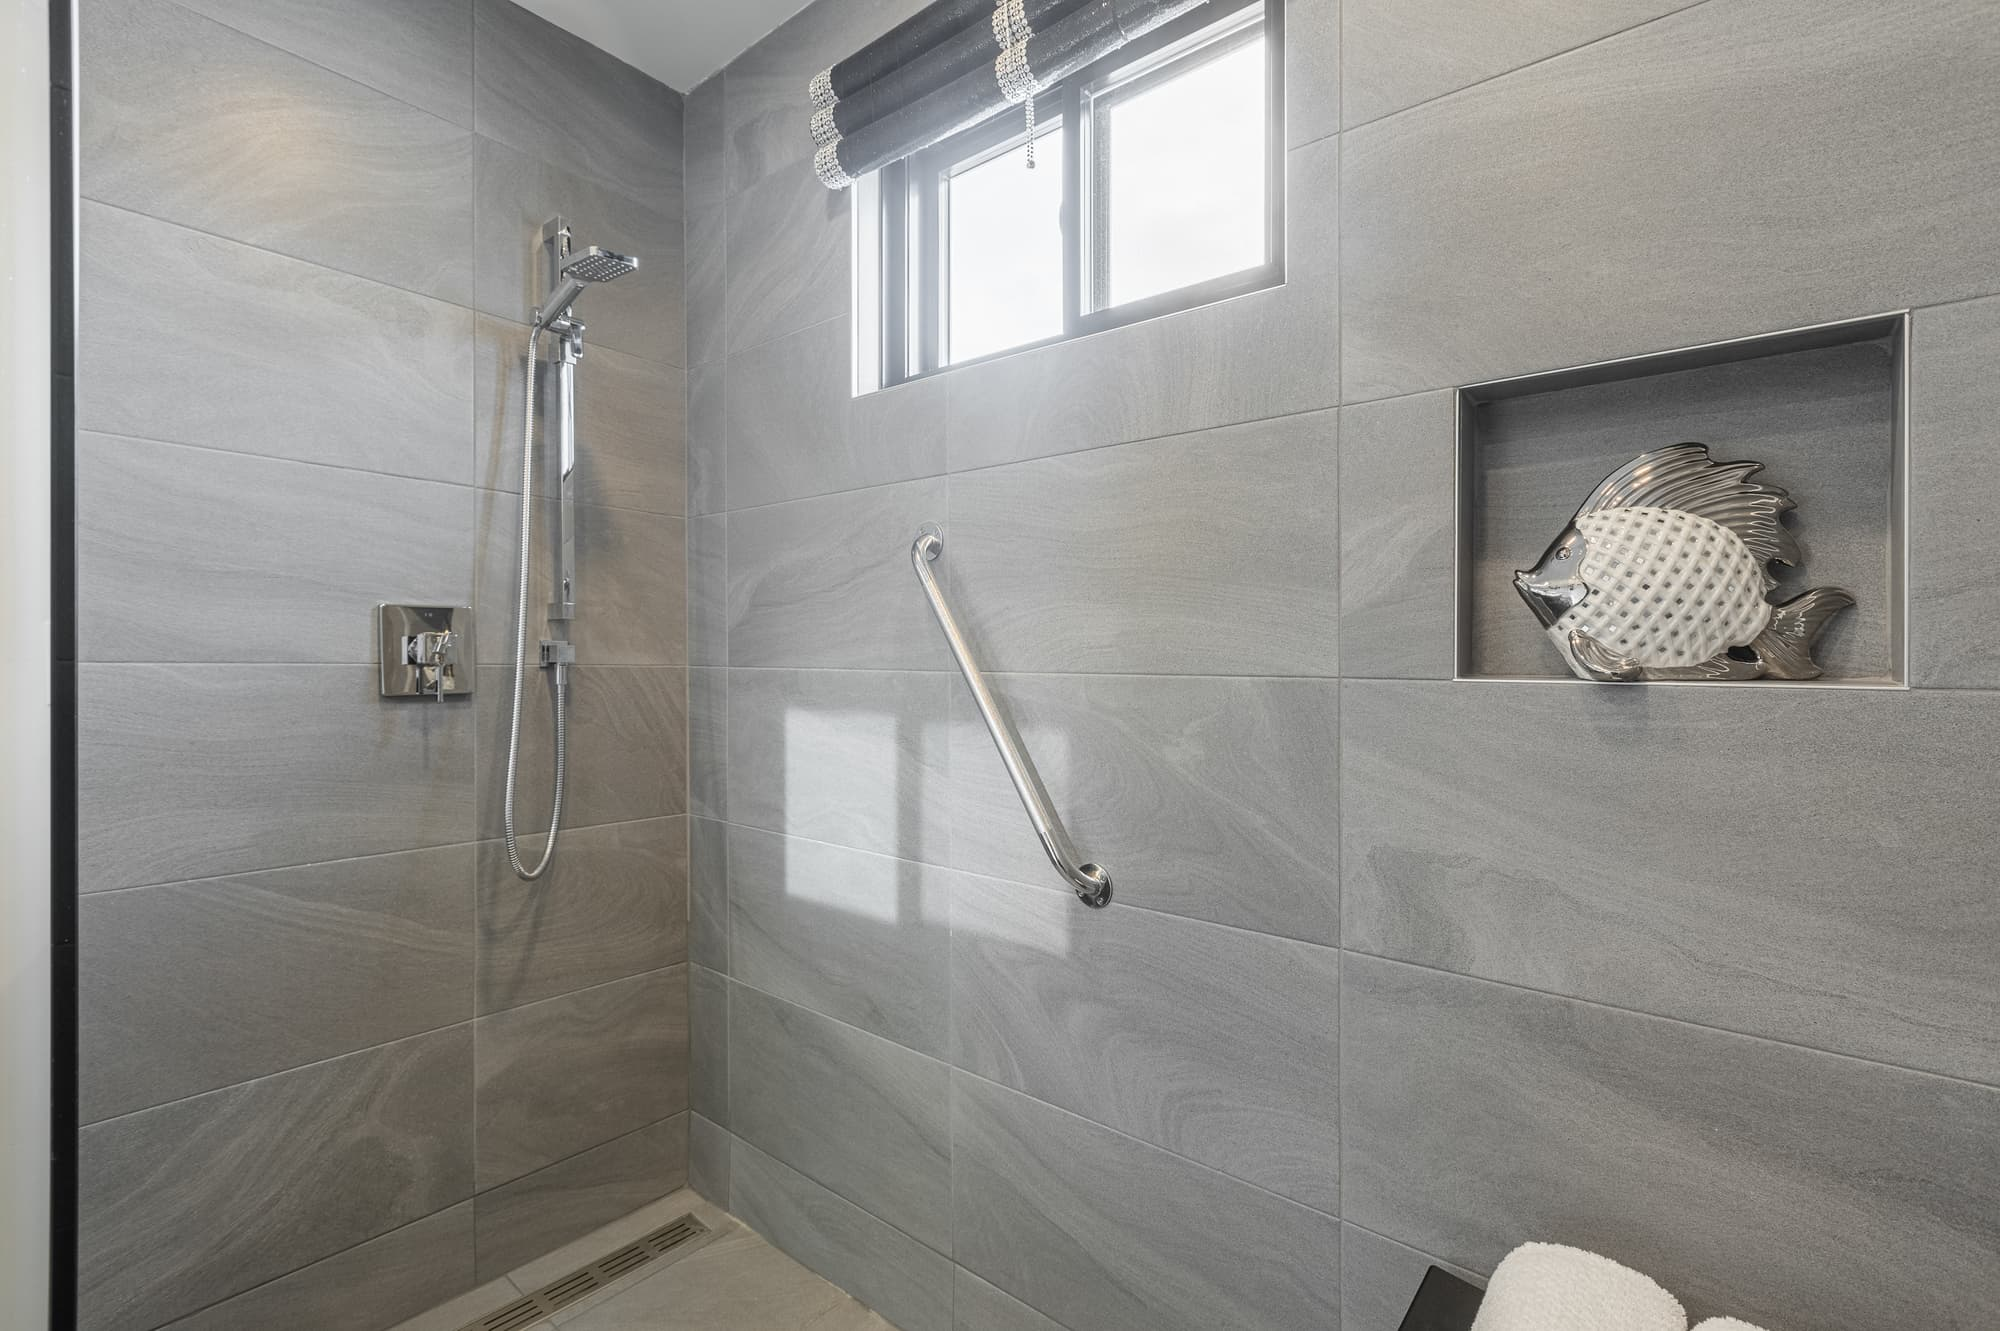 walk-in shower with grey tiles and handrails